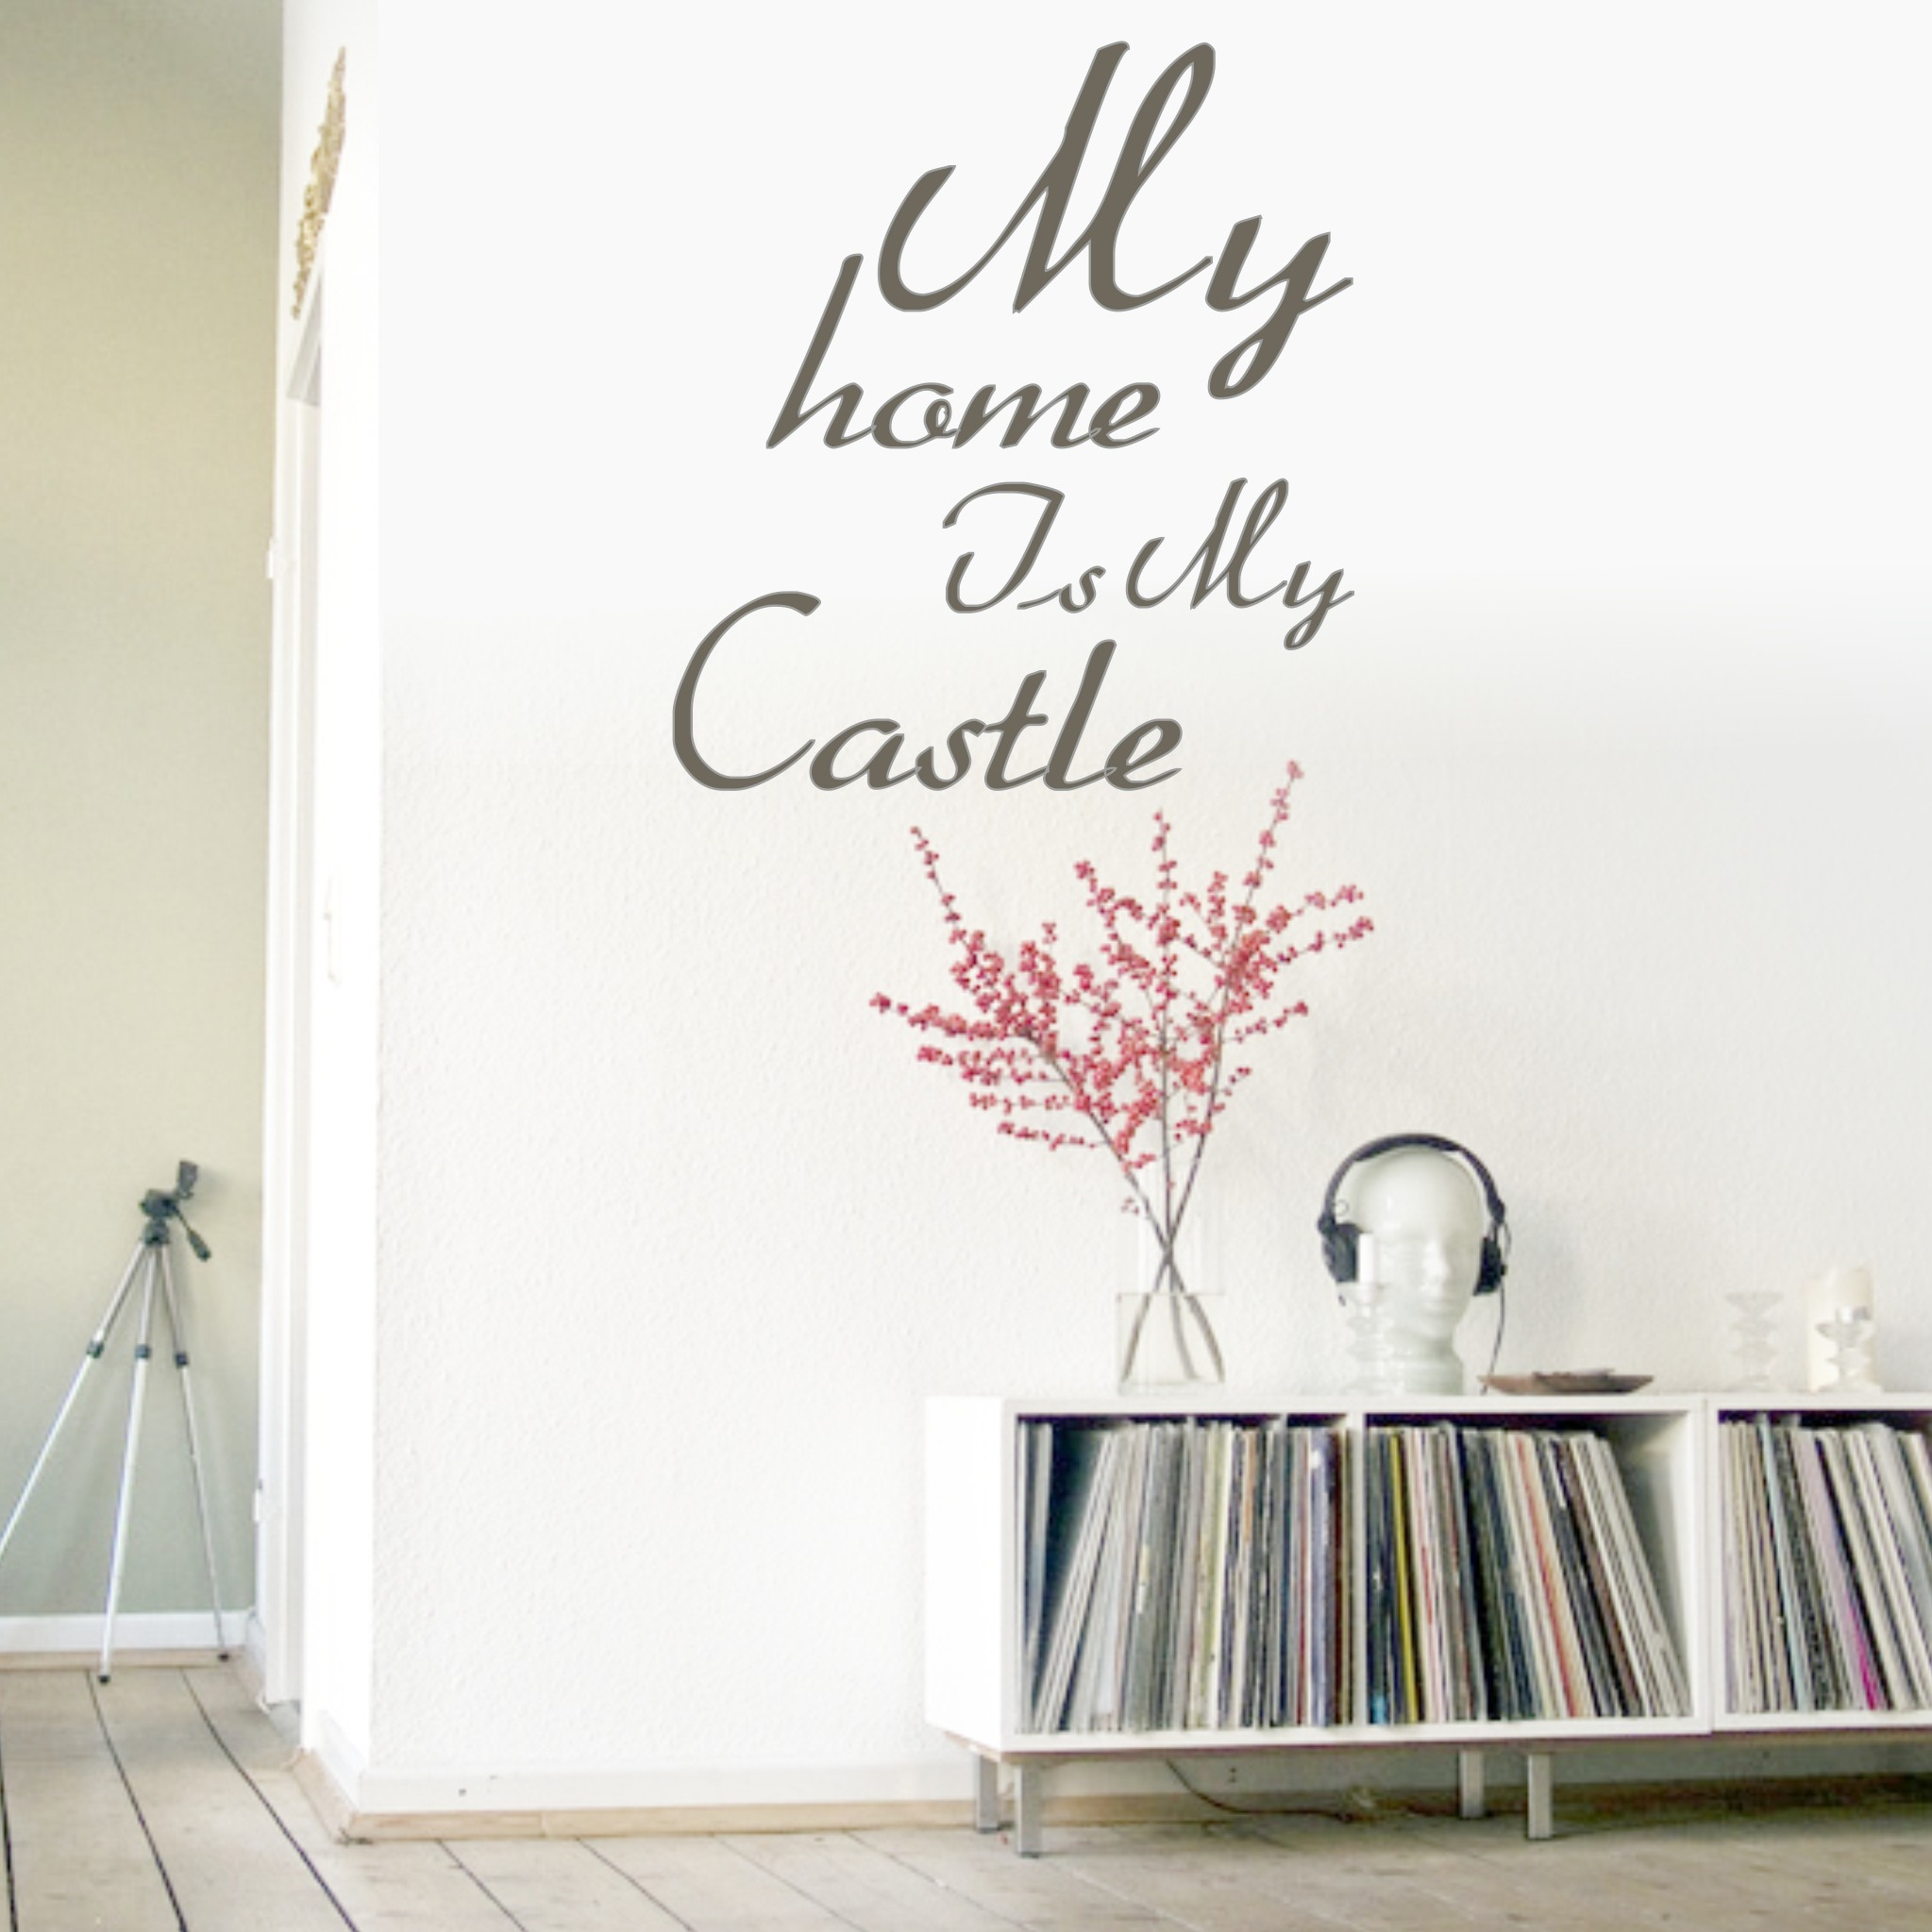 wandtattoo my home is my castle spr che zitate. Black Bedroom Furniture Sets. Home Design Ideas